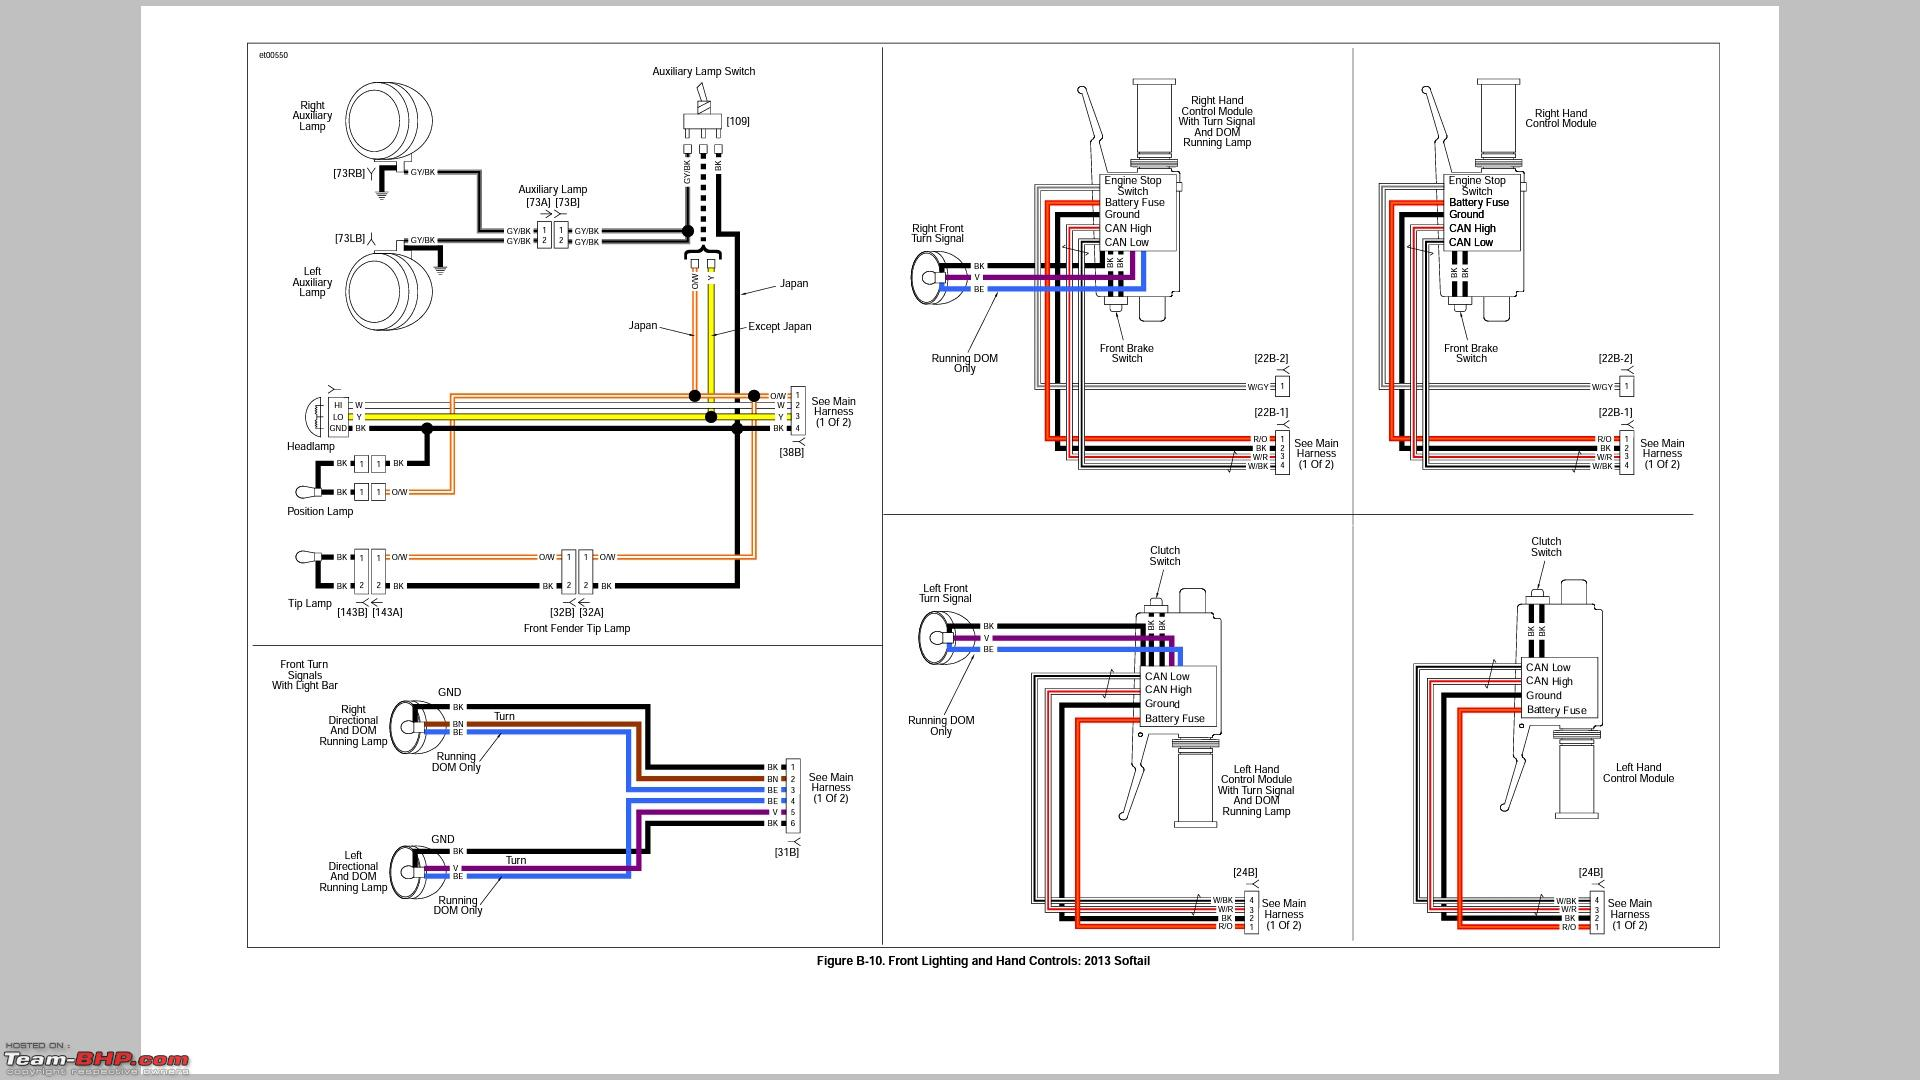 Flstc Wiring Diagram | Wiring Liry on 2010 flhx switch control diagram, 2006 harley motor, 2006 harley manual, 2006 harley battery, harley davidson charging system diagram, 2006 sportster diagram, 2006 harley antenna, softail speed sensor diagram, 2006 harley clutch, 1966 corvette charging system diagram, street glide gauges diagram,